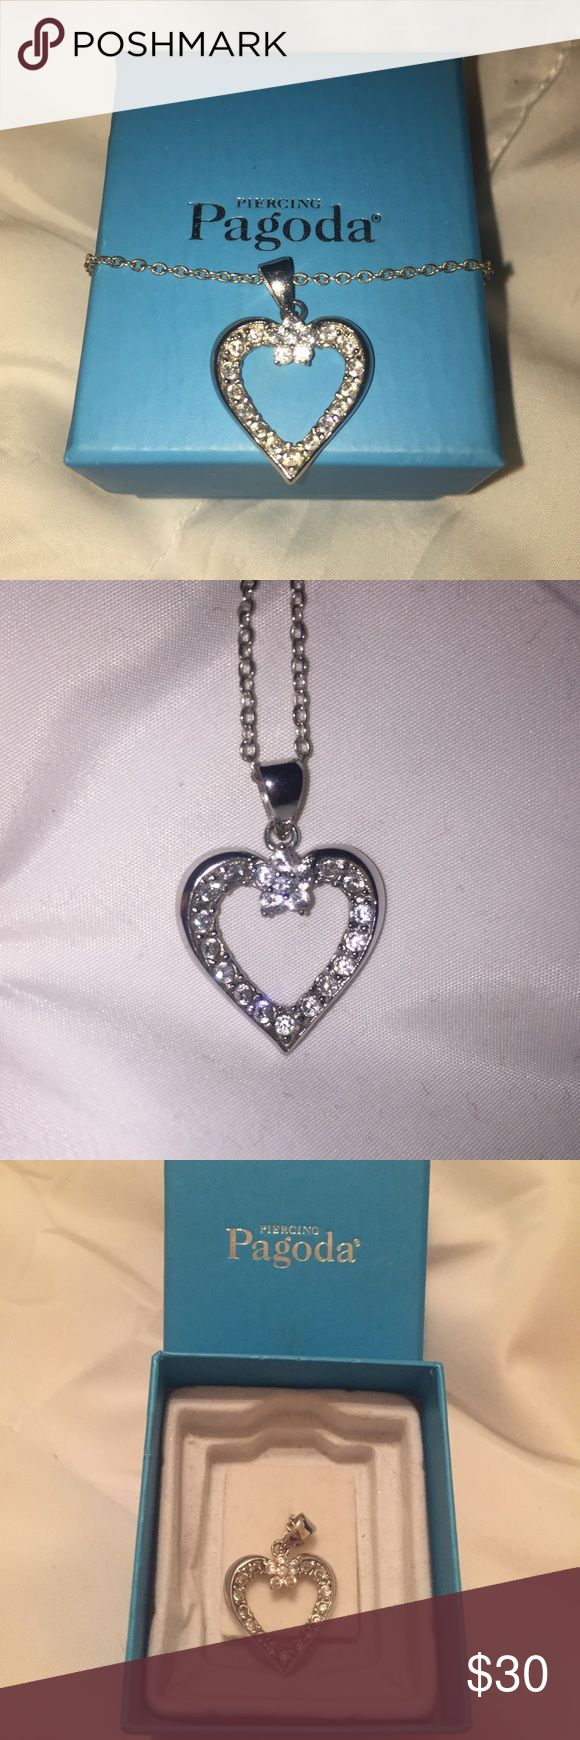 Piercing pagoda heart necklace Beautiful silver heart pendant necklace from piercing pagoda. Only worn a few times. Comes with original box. No stones missing. NO TRADES Piercing Pagoda Jewelry Necklaces